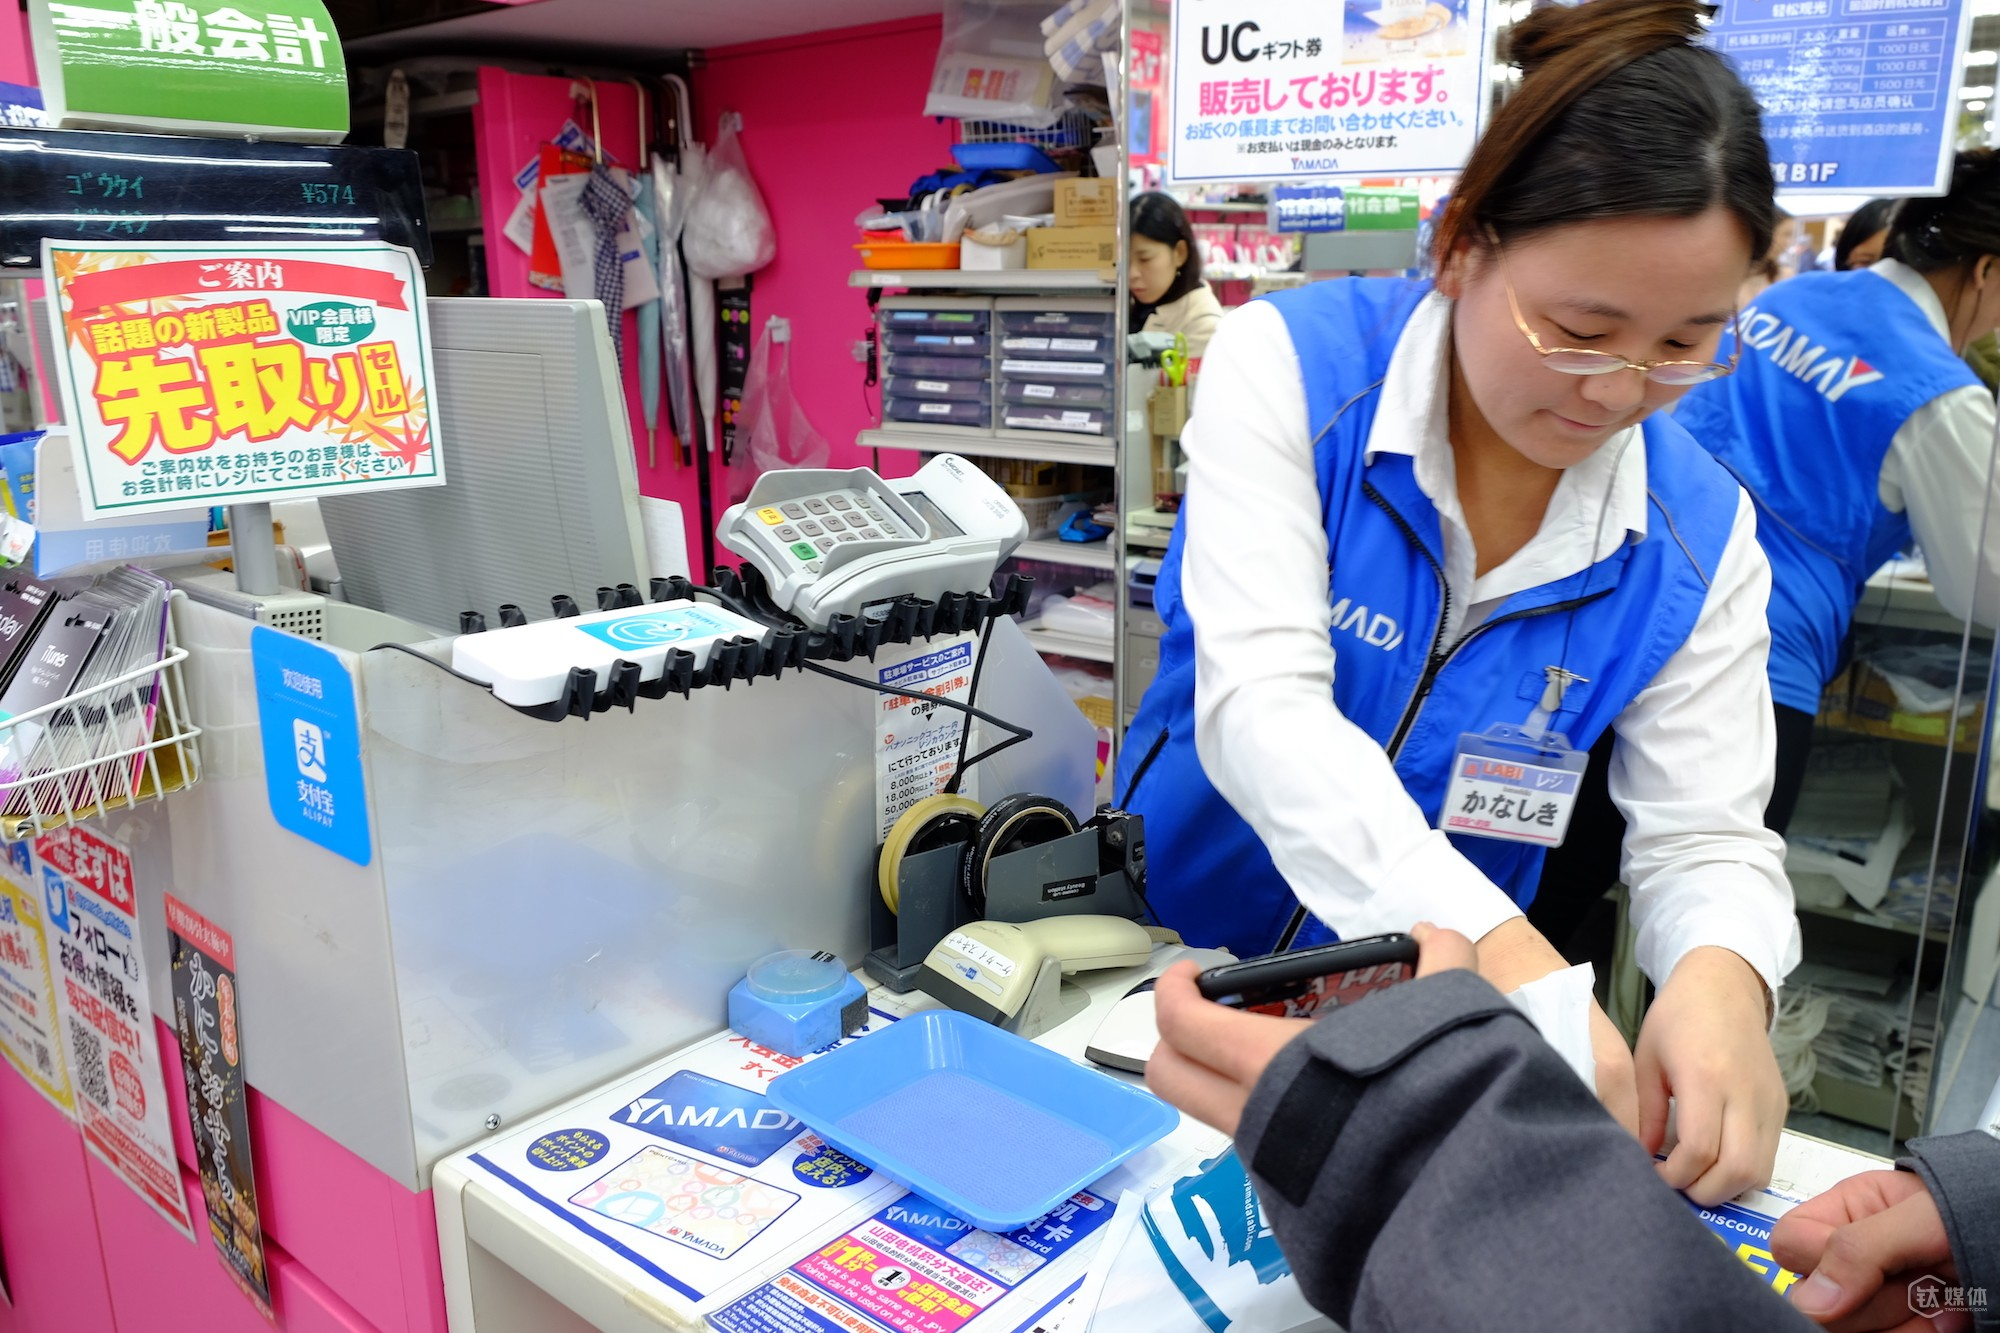 Ant Financial often chooses to launch Alipay at places Chinese consumers frequent